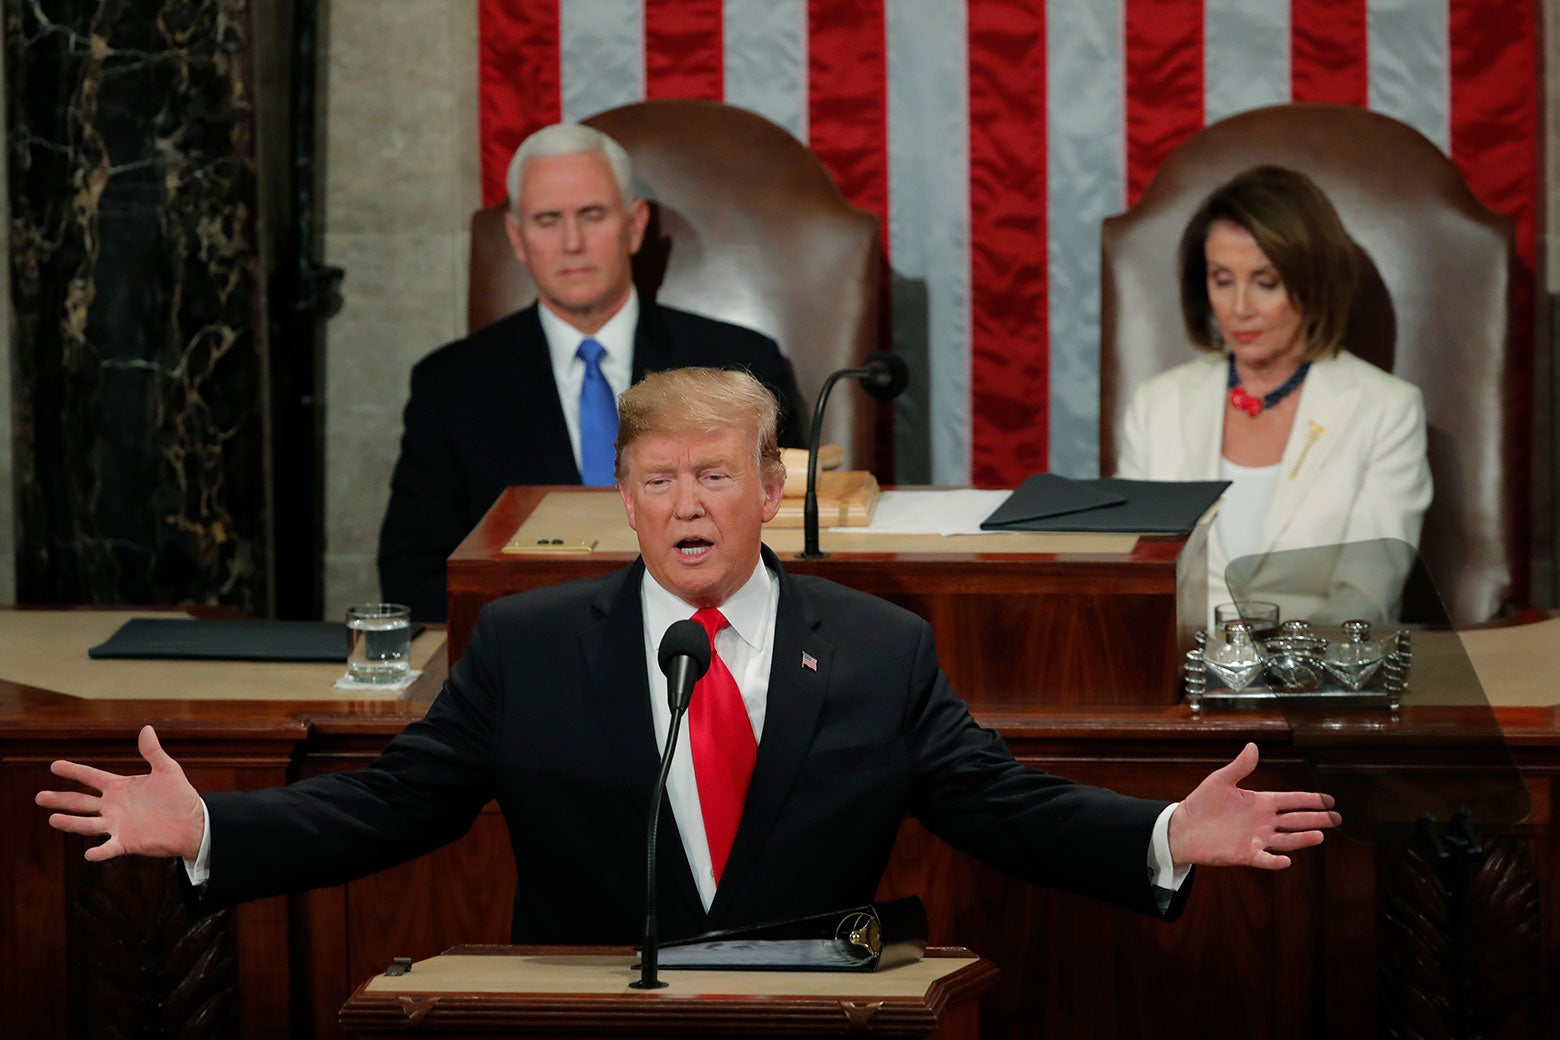 President Trump delivers his State of the Union address to a joint session of Congress on Capitol Hill in Washington, Feb. 5, 2019.